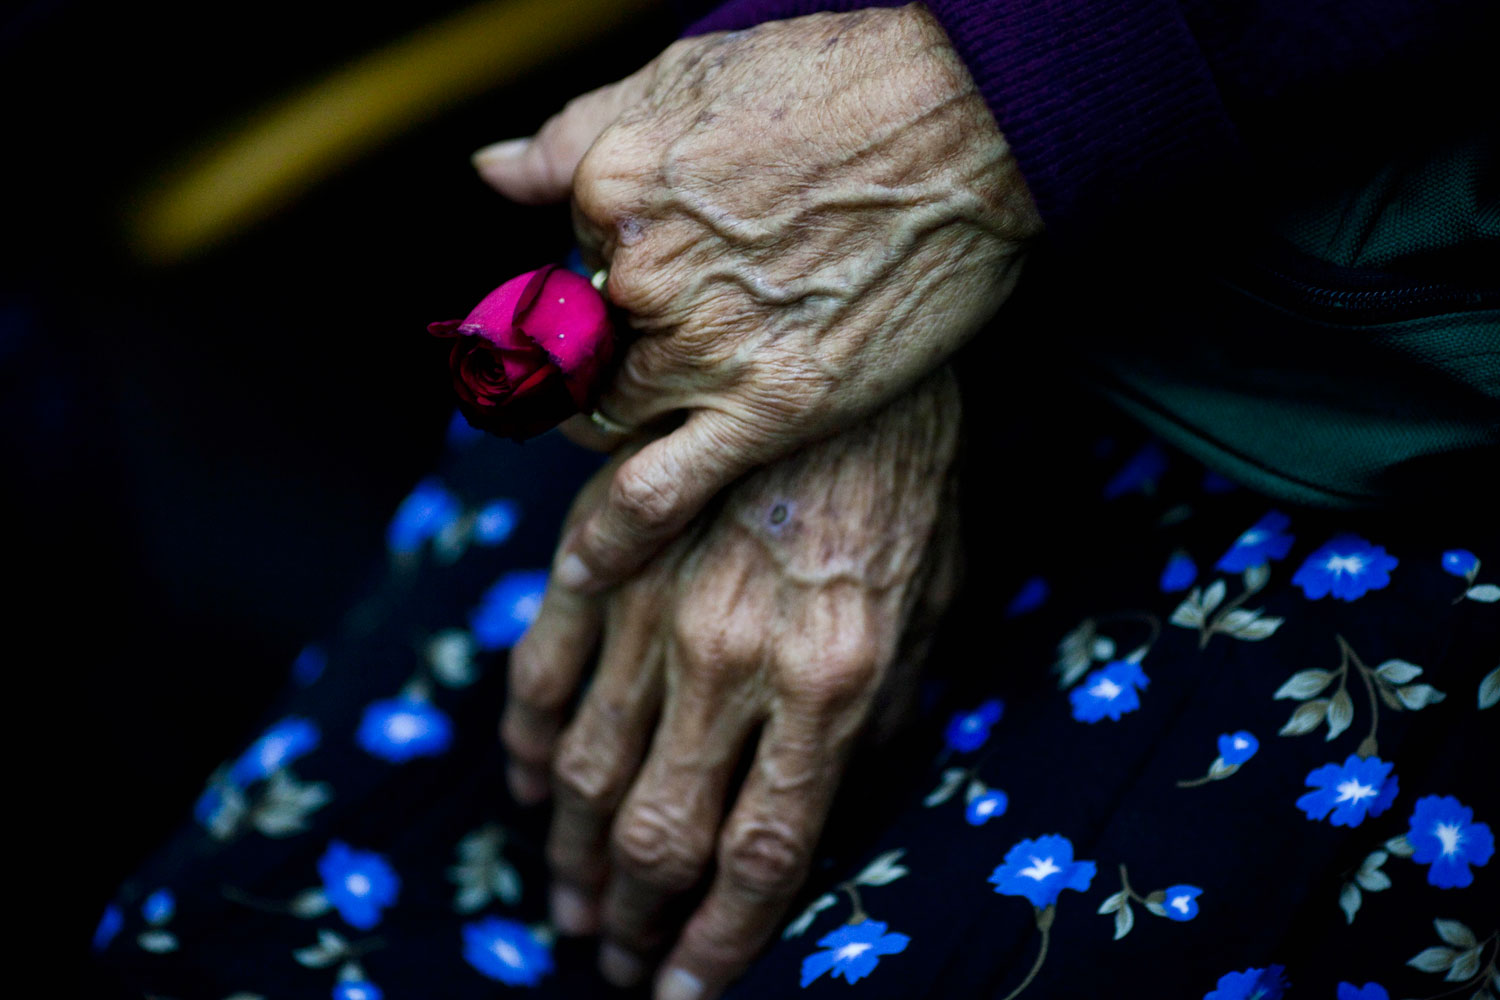 Aug. 2, 2011. Cristina Alfaro Mejia, whose husband and daughter were killed by soldiers during a massacre in the community of  Dos Erres in 1982, holds a rose while waiting to the sentence in Guatemala City. The court sentenced three former special forces soldiers to 6,060 years in prison each for the massacre of more than 200 men, women and children, one of hundreds that occurred during Guatemala's 36-year civil war, which ended in 1996. Some 240,000 people, mostly Mayan Indians, vanished or died.